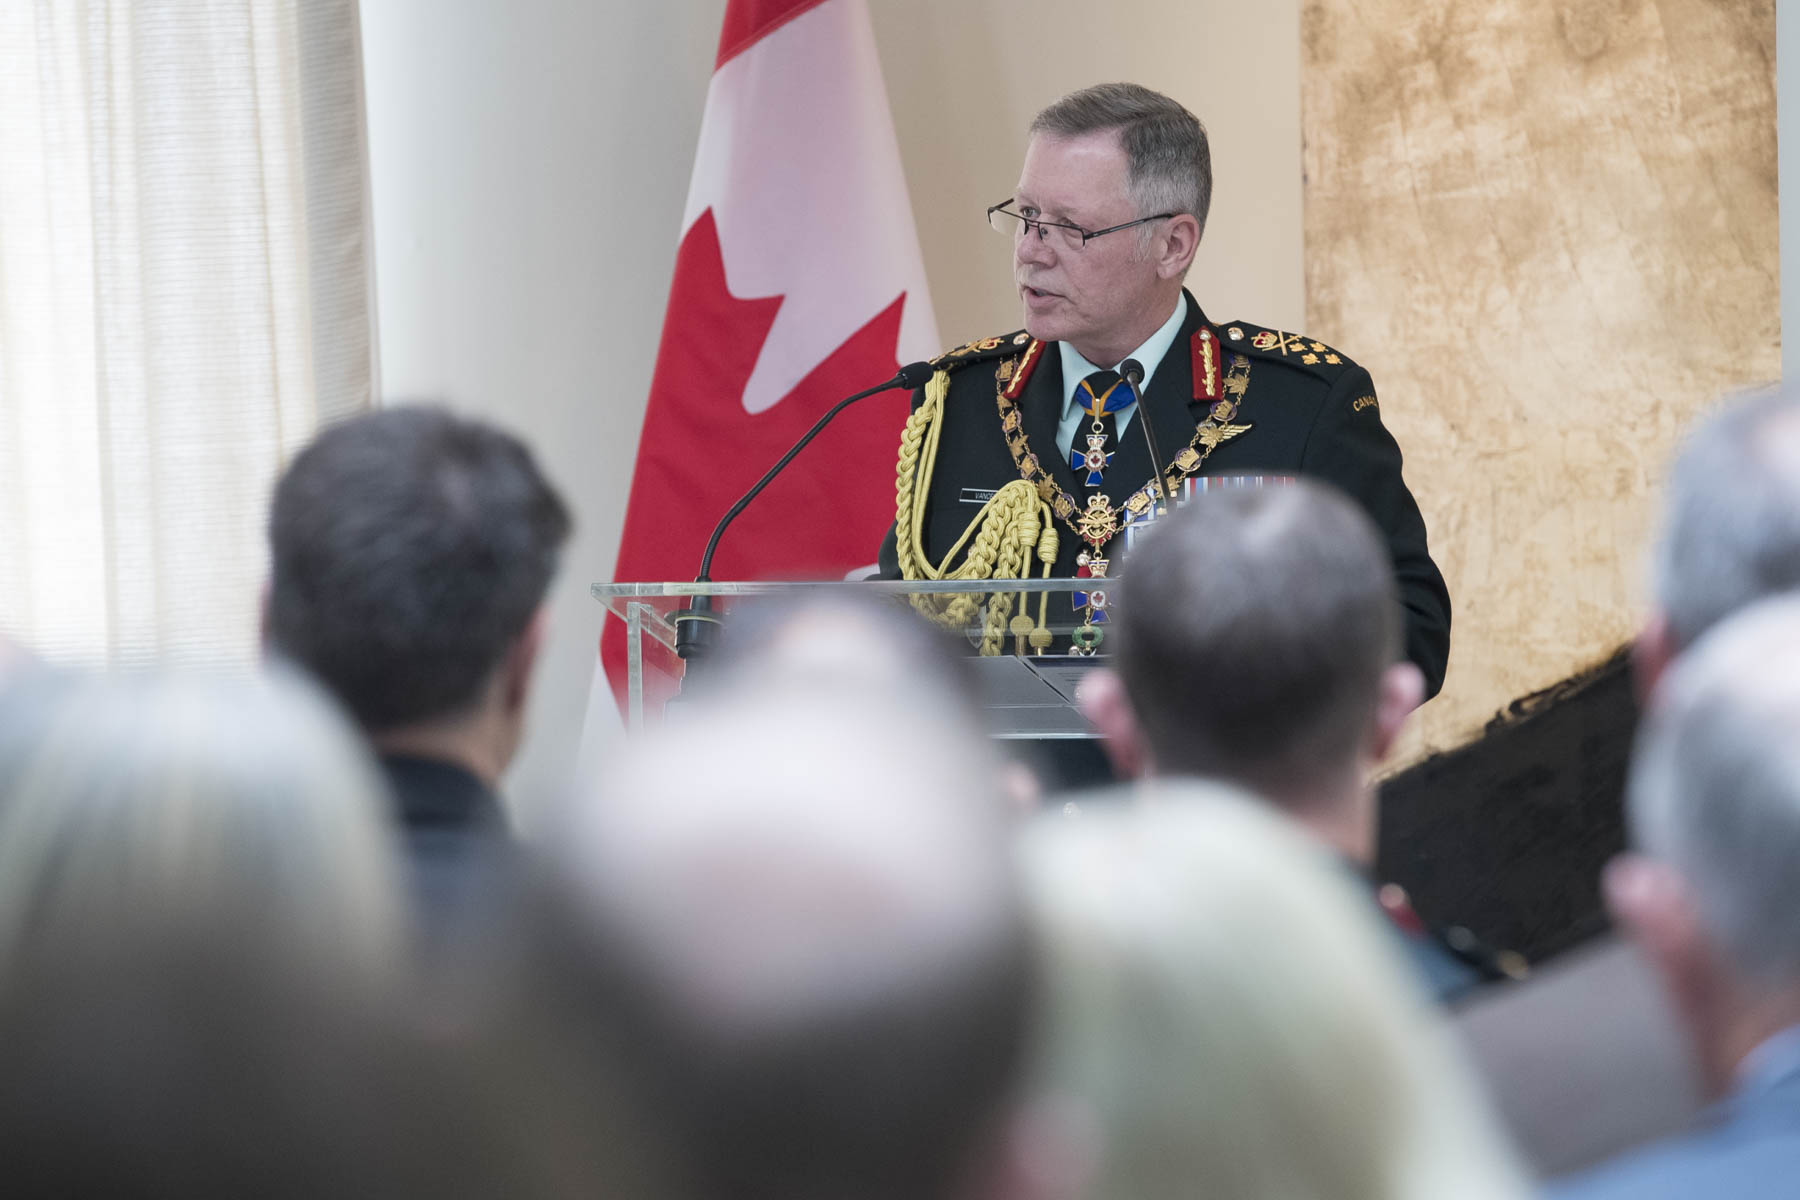 General Jonathan Vance, Chief of the Defence Staff offered closing remarks in which he congratulated the newly invested members of the Order of Military Merit for their dedication and exceptional service.